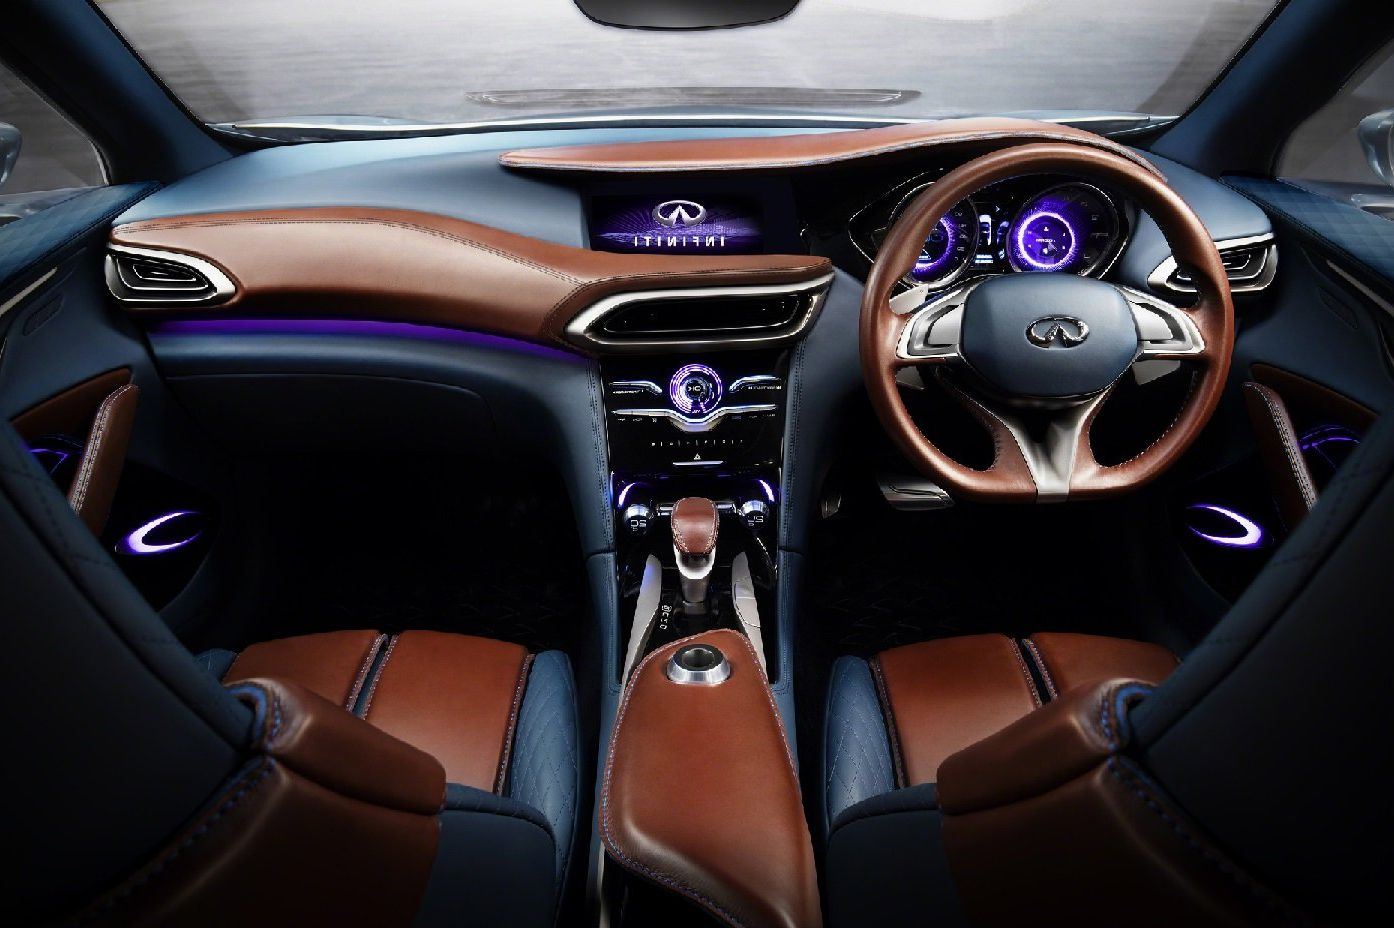 2018 Infiniti QX70 Interior Features